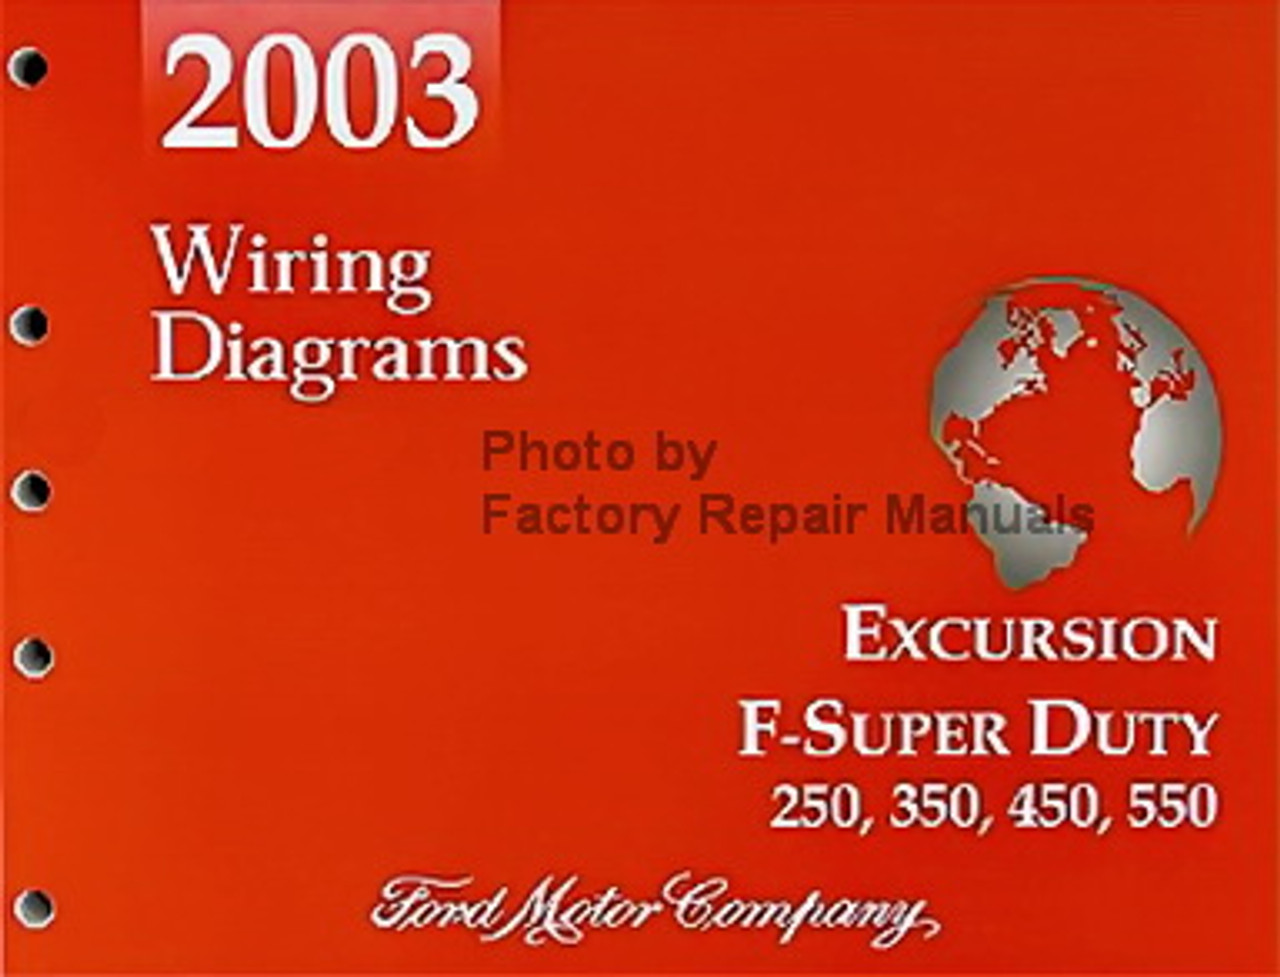 2003 ford f250 f350 f450 f550 super duty truck & excursion wiring diagrams  new - factory repair manuals  factory repair manuals